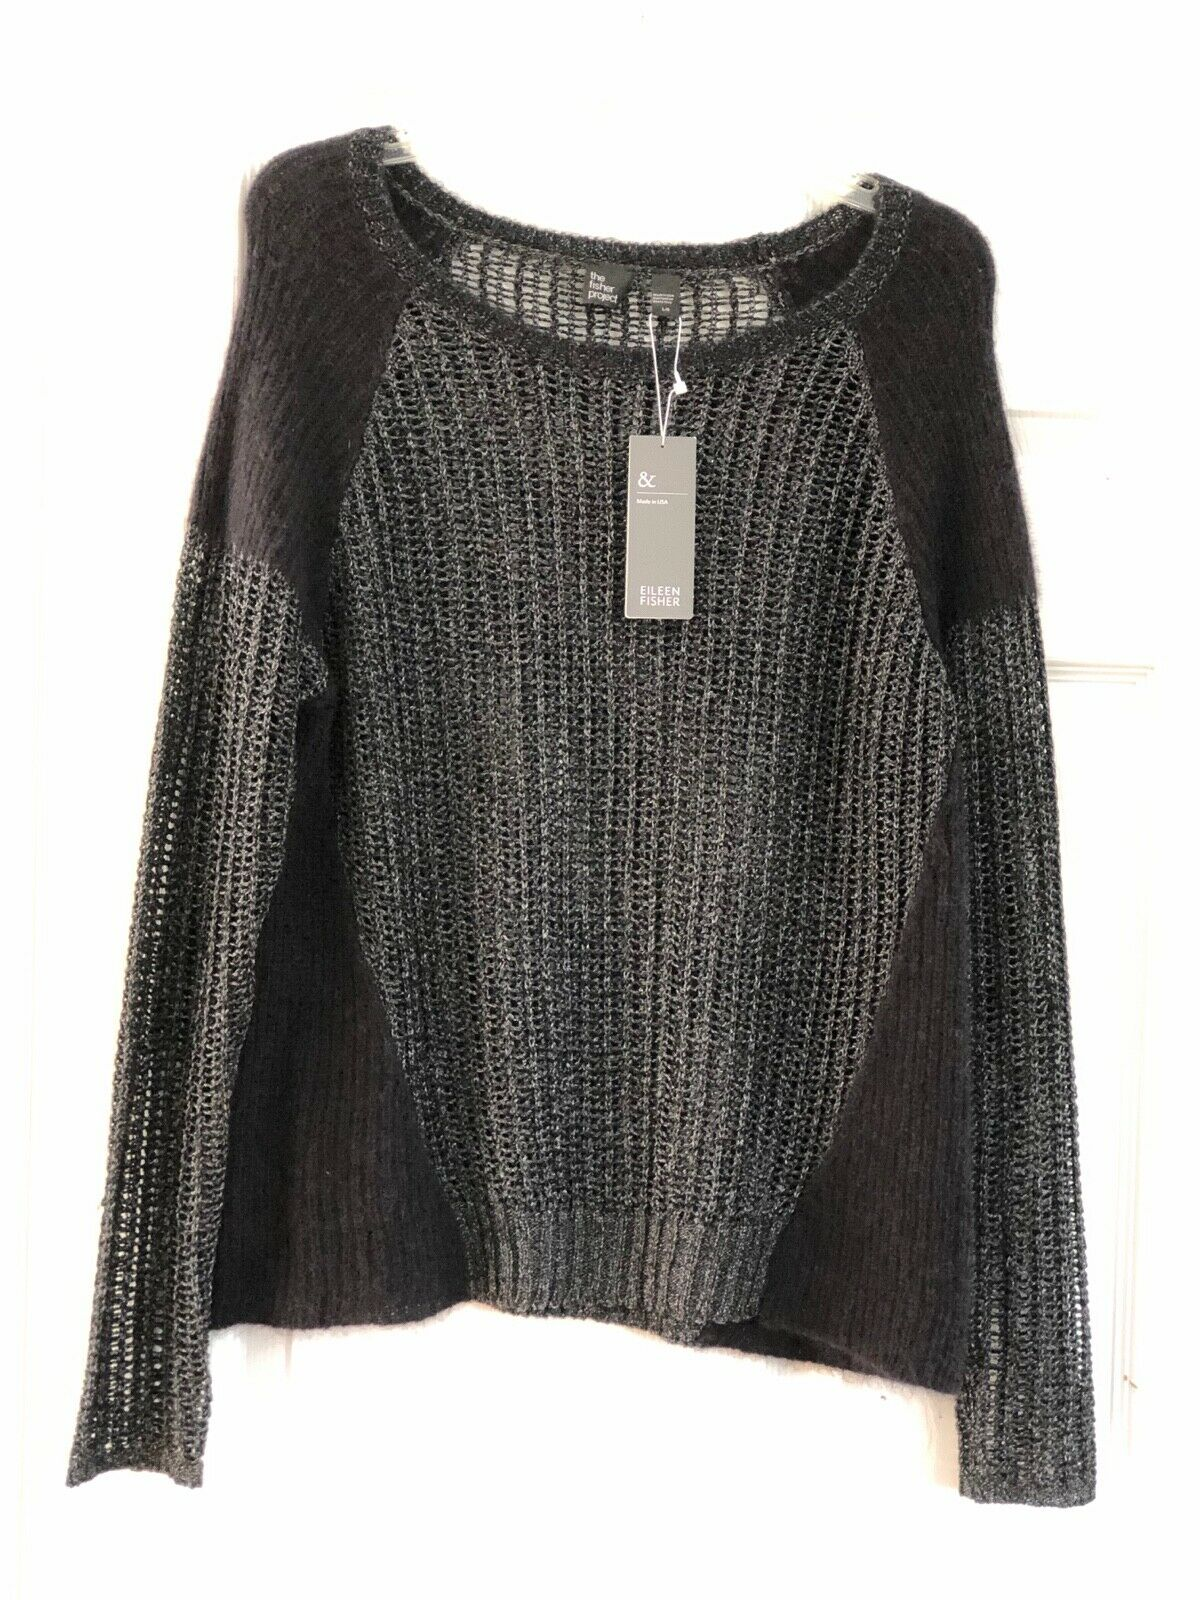 The Fisher Project Ballet NK Crop Sweater Size L G